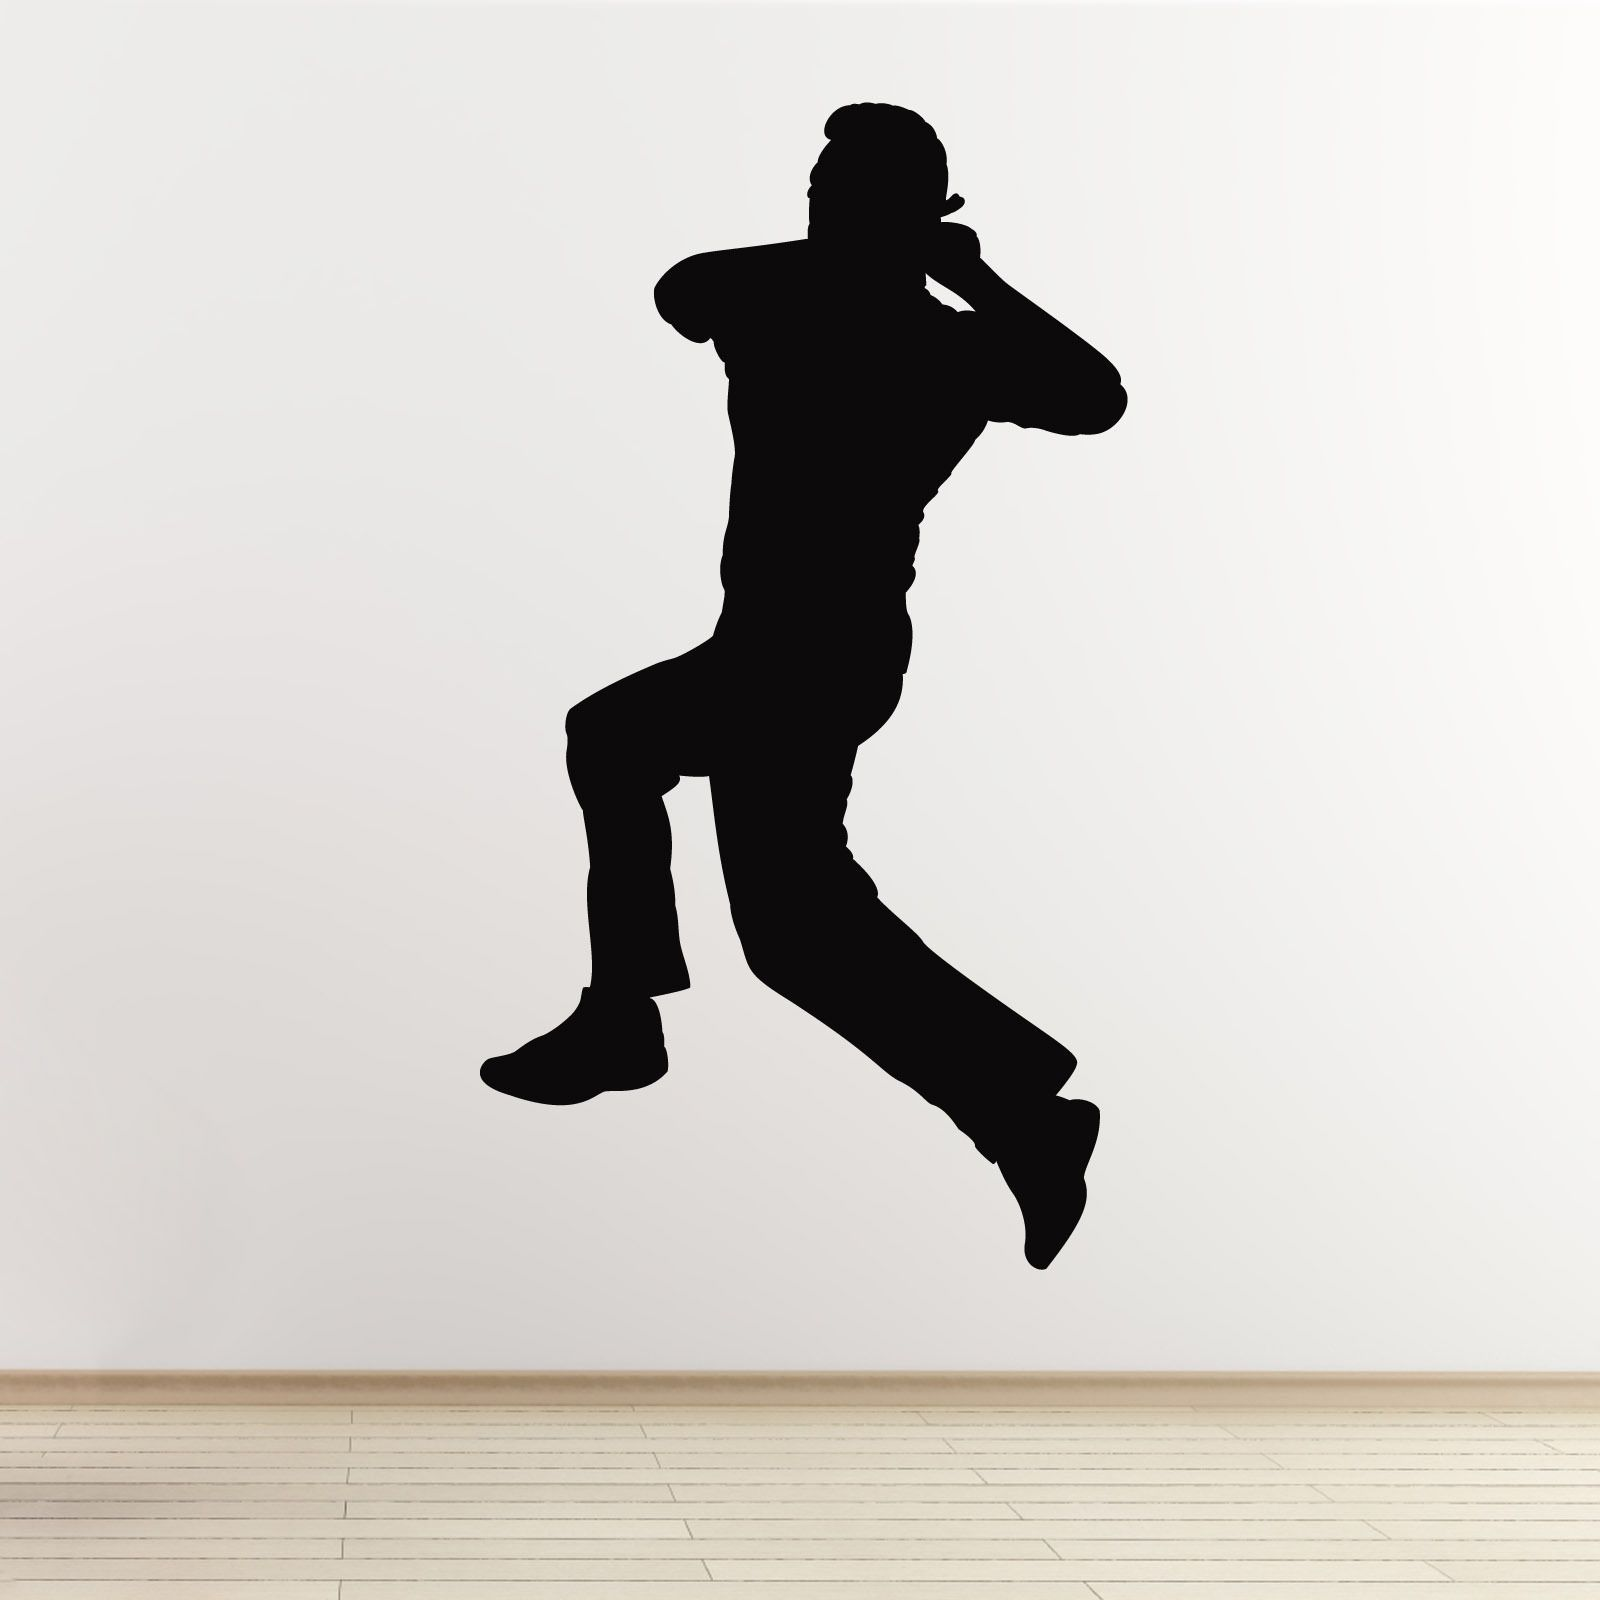 Cricket Wall Sticker   Spin Bowler Cricketer   Boys Bedroom Sports Themed  Decal | EBay